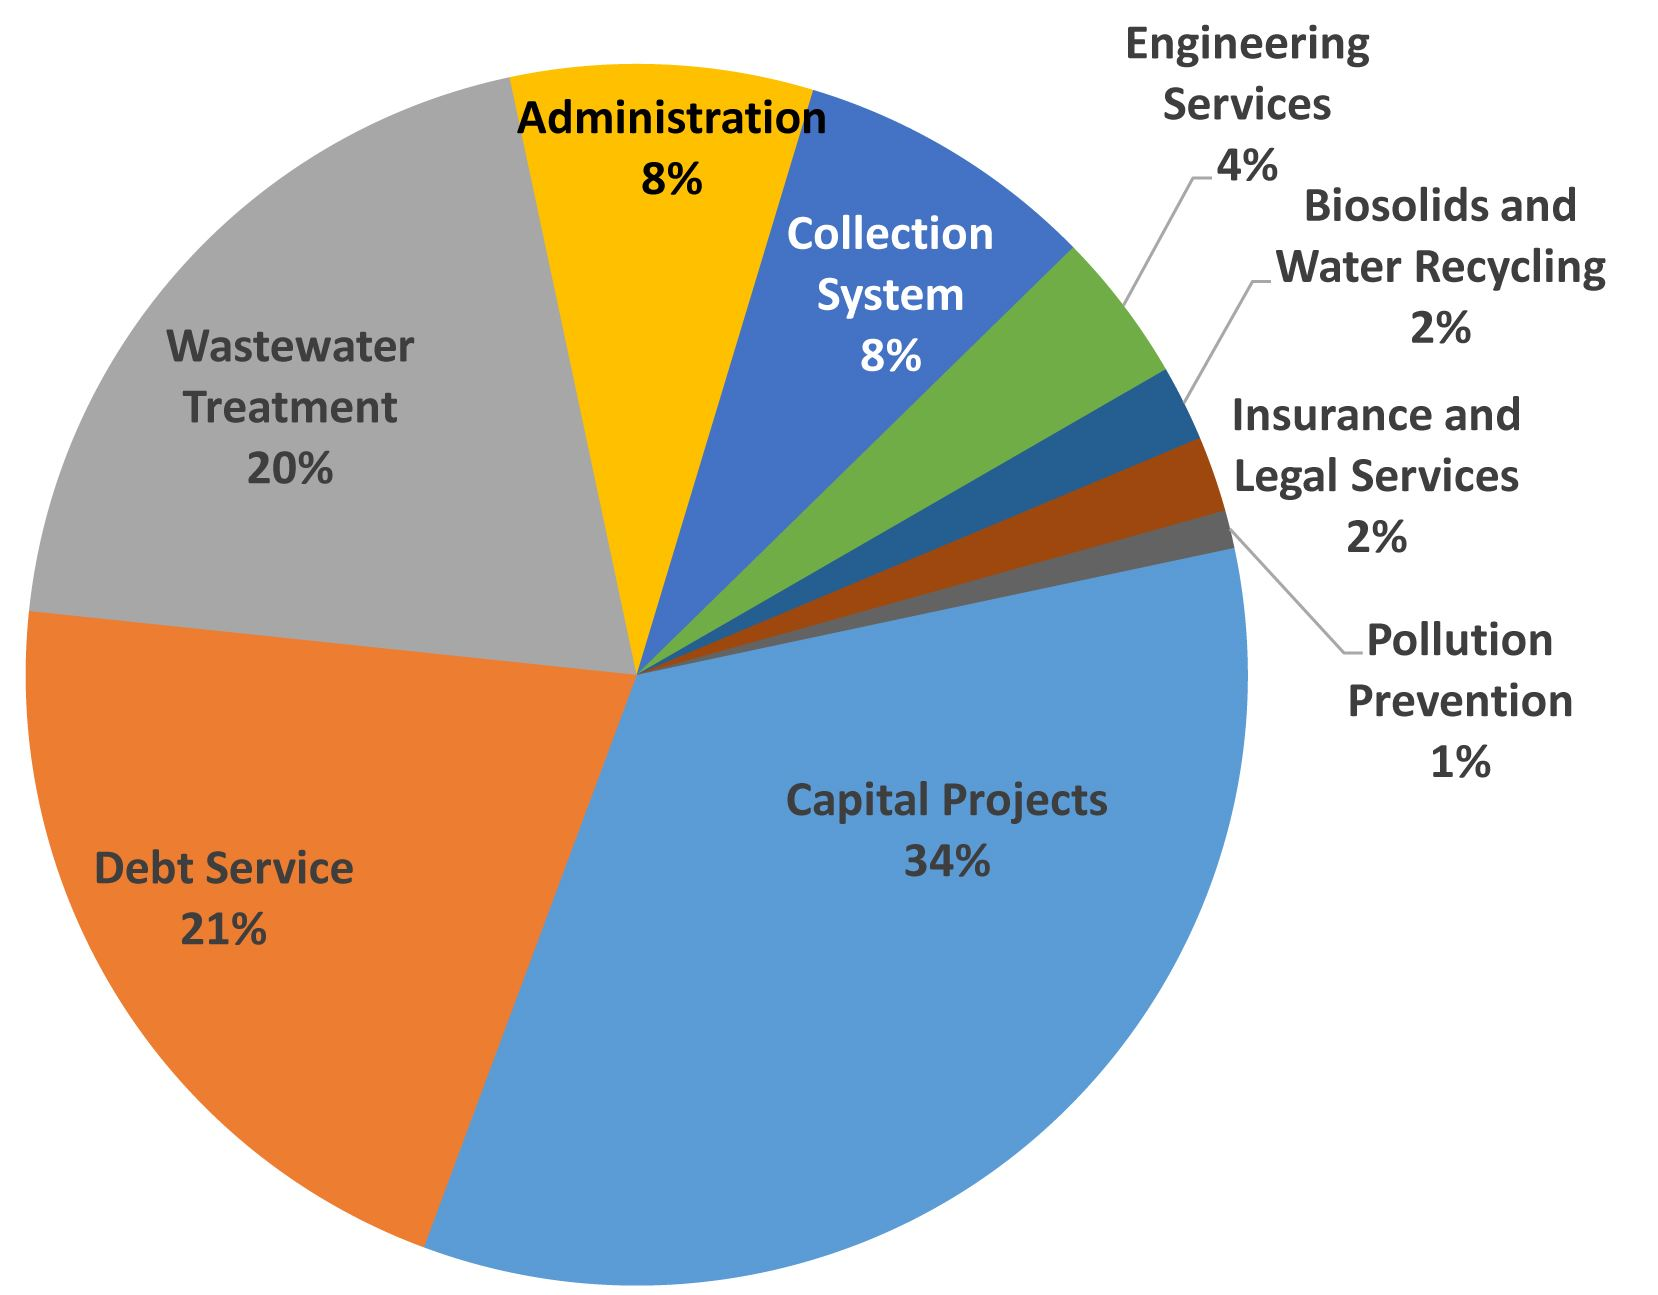 sewer service charge piechart